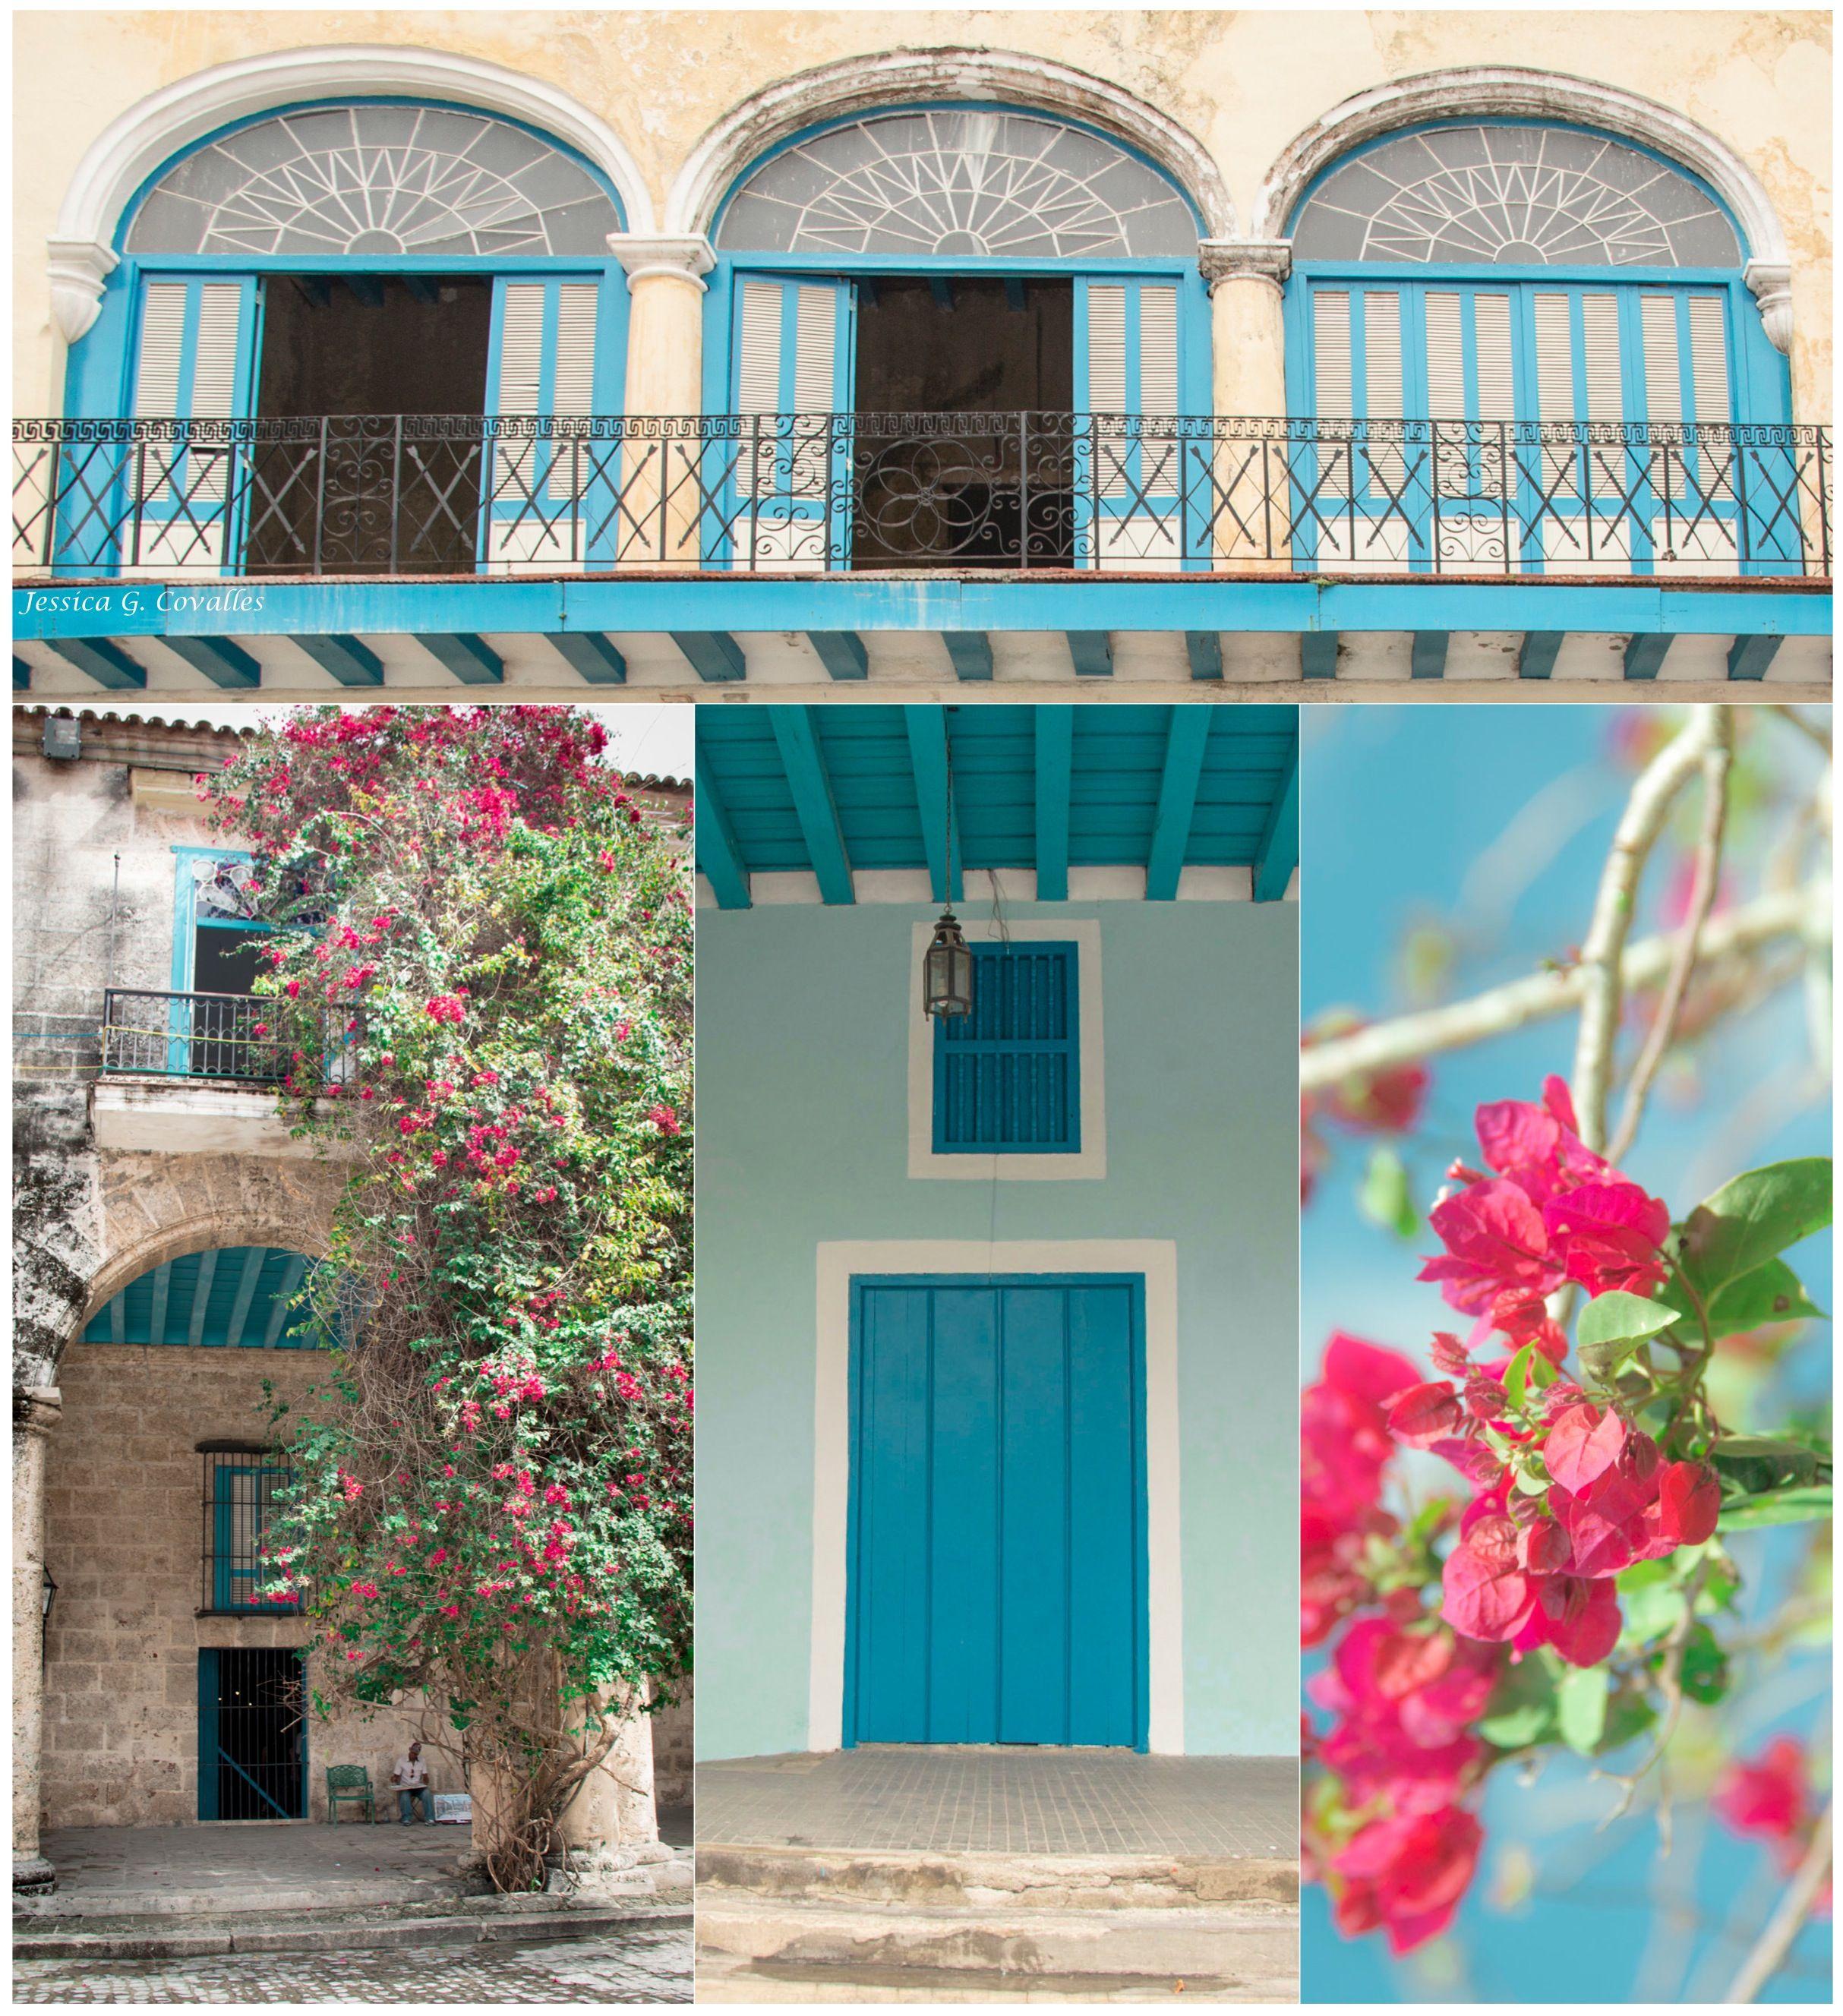 Old Havana. Colonial - Blue.  La Habana vieja, Colonial - Azul. Photography by: Jessica G. Covalles